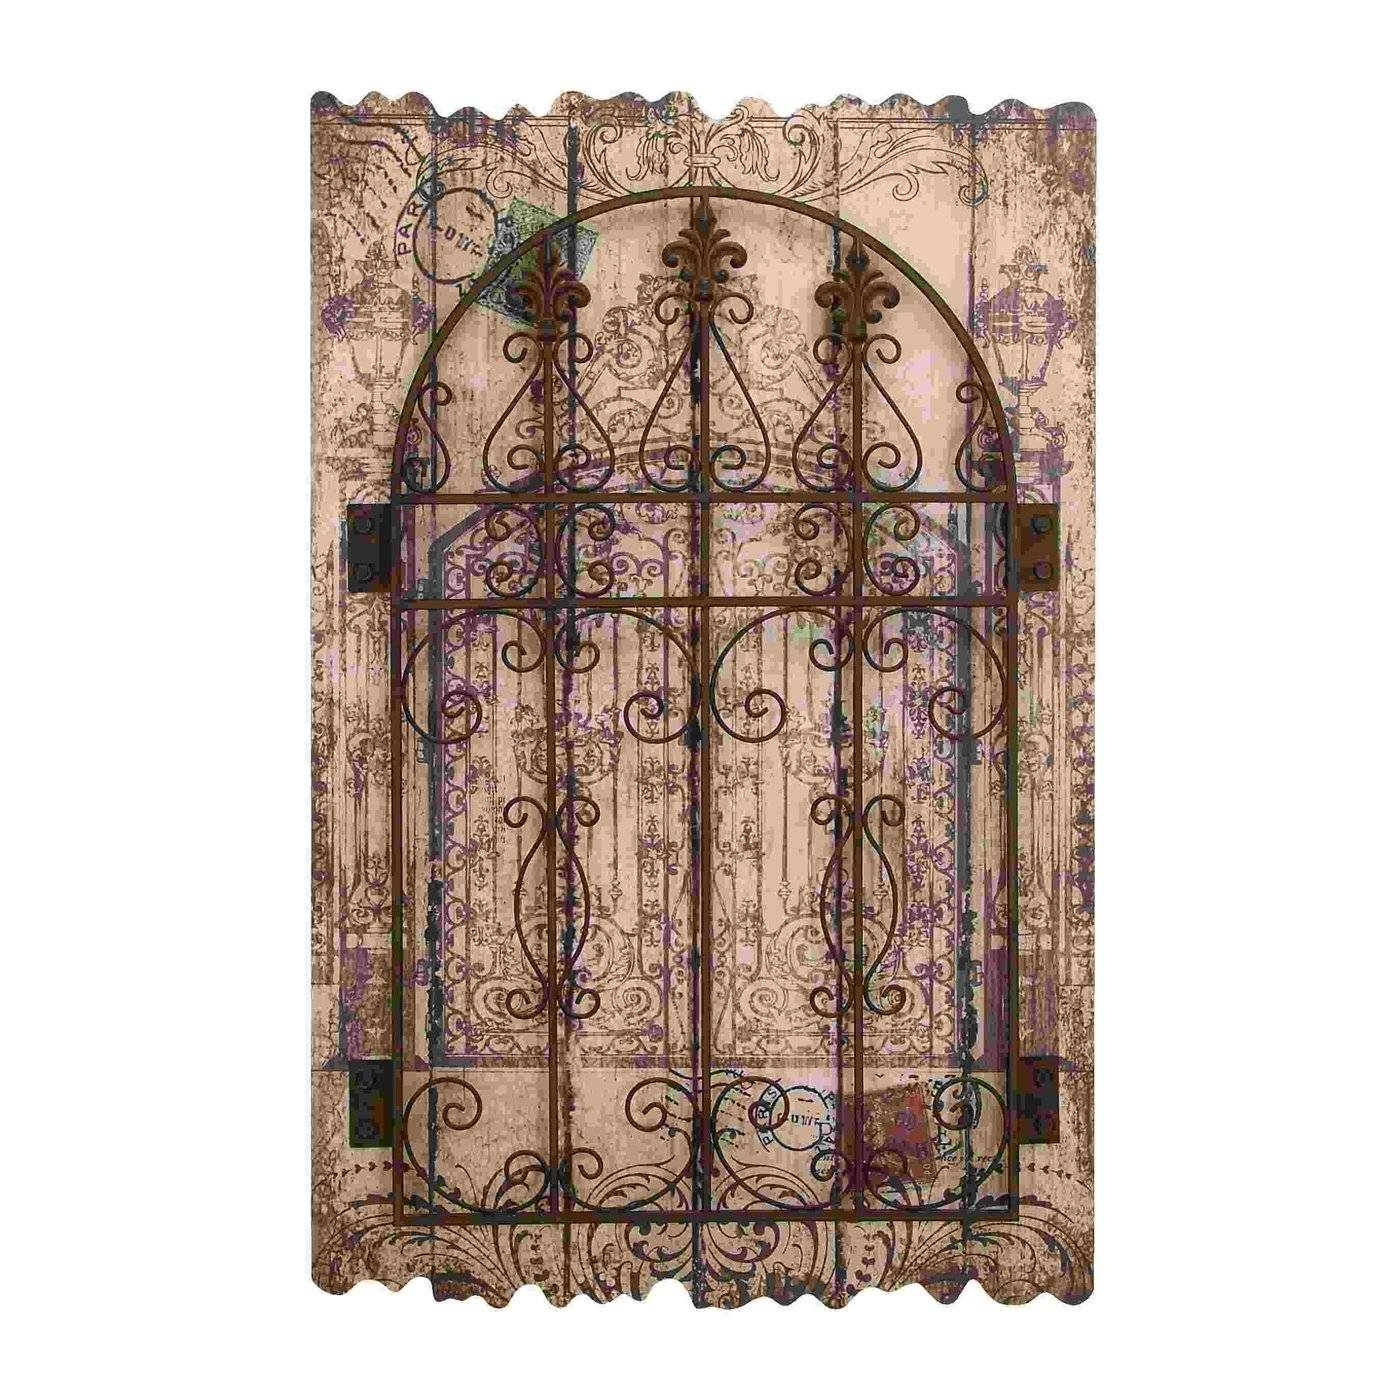 Wall Art Designs: Rustic Wood And Metal Wall Art Transitional For Best And Newest Wood Metal Wall Art (View 7 of 20)